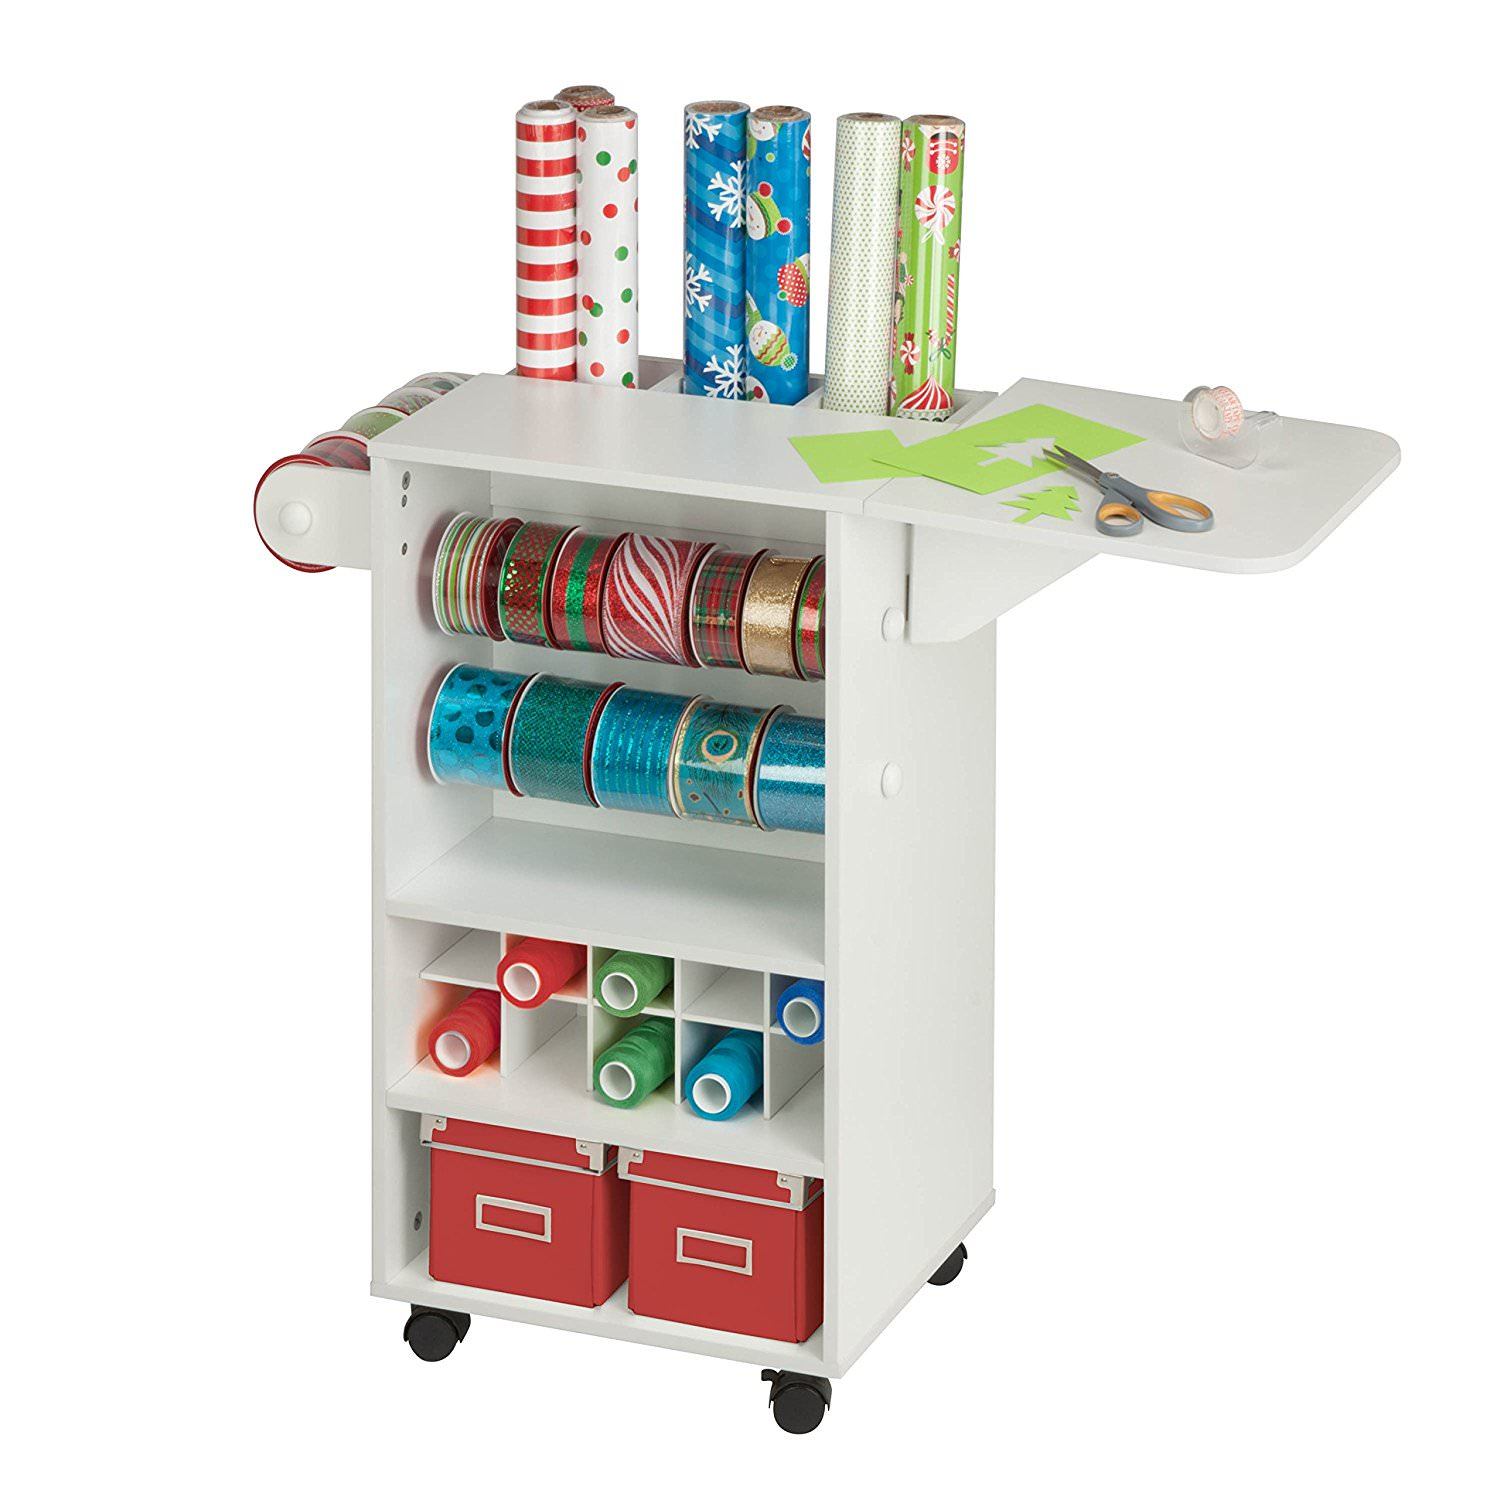 Storage Table On Wheels Details About Storage Rolling Cart 3 Drawers White Organizer Shelf Folding Side Table 4 Wheels